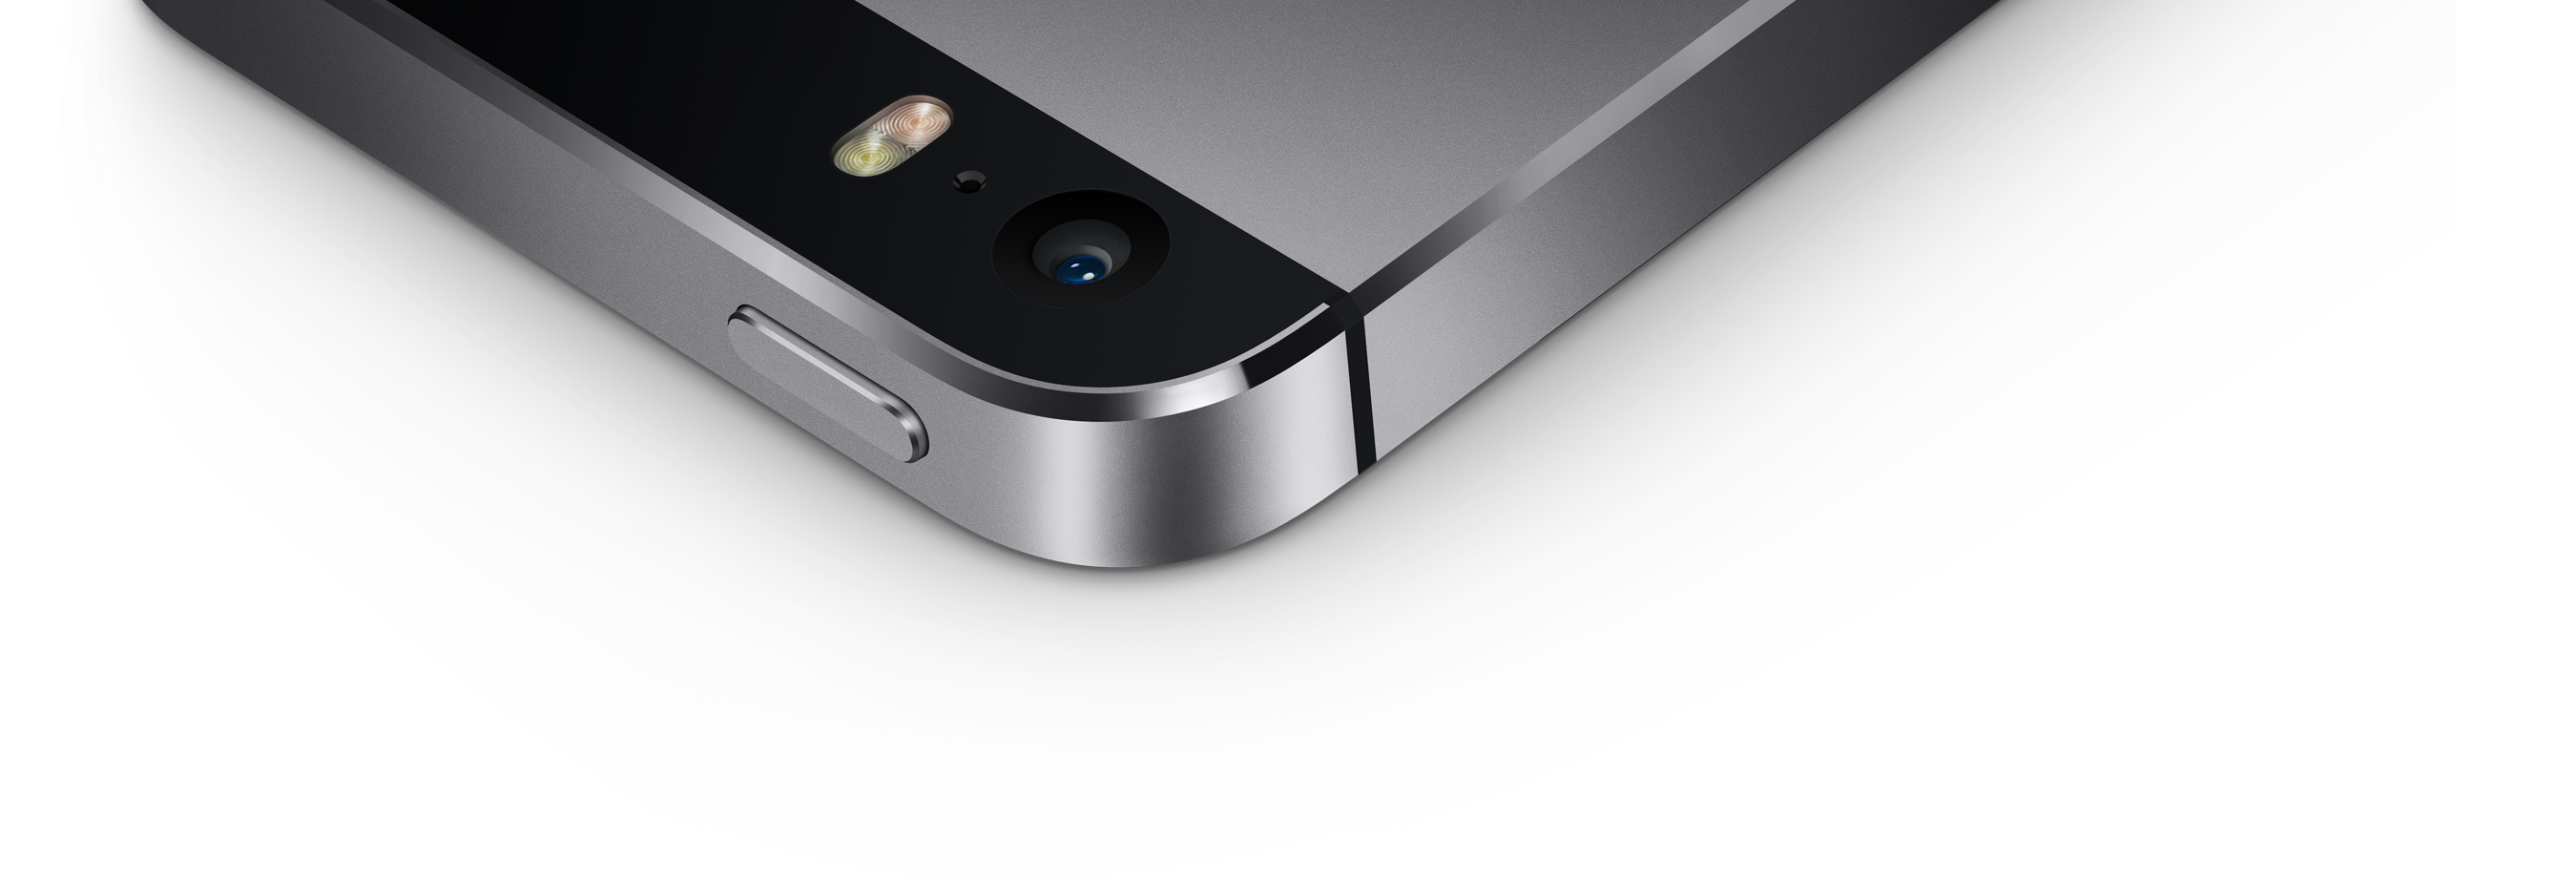 Apple Iphone 5s Gallery Apple Iphone 5s Camera Grey